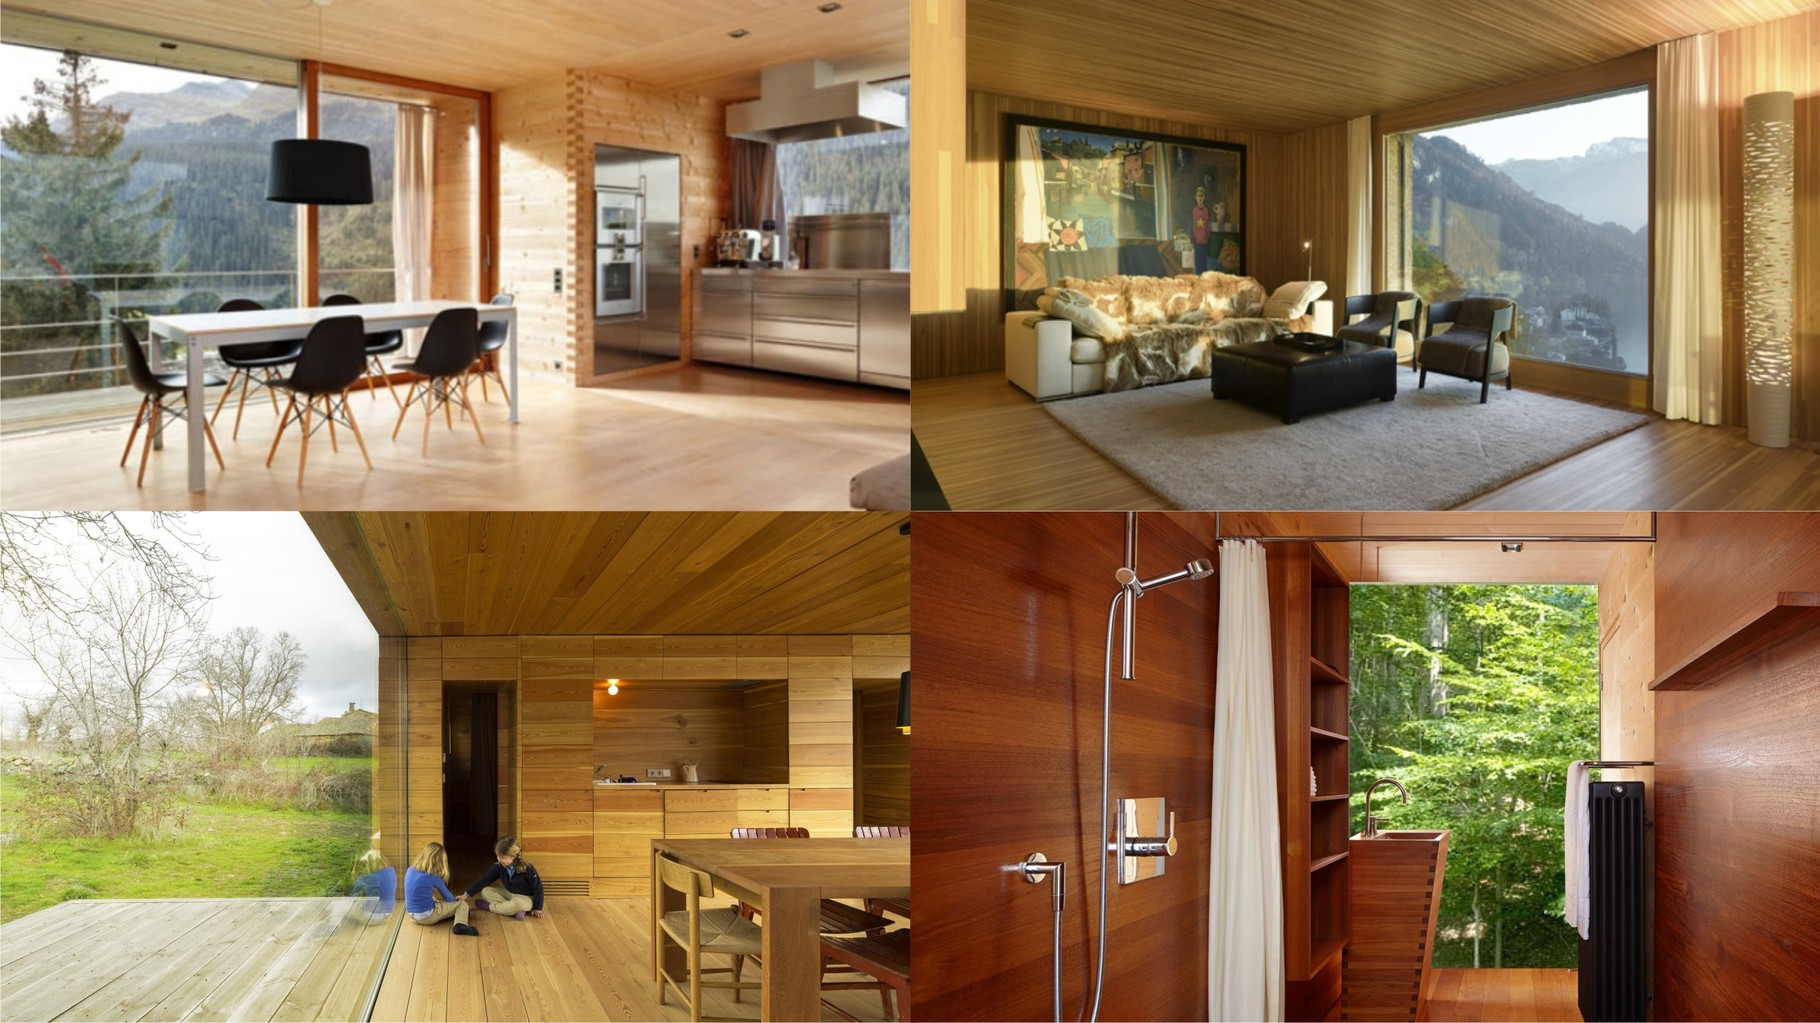 Visualisation OAS1S™: Rustic wooden cabin-like interiors with large windows towards the surroundings.